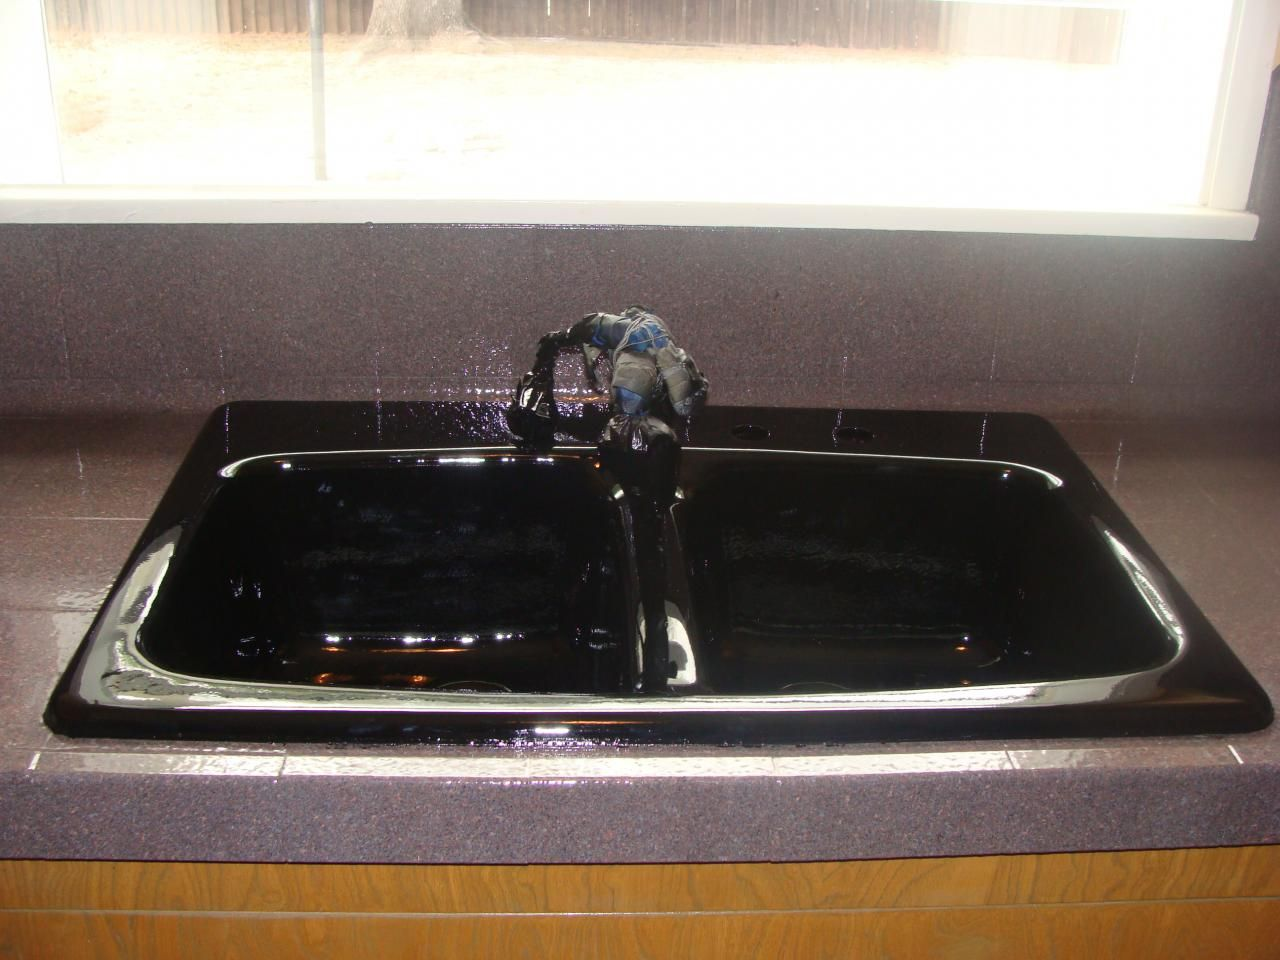 Pkb Reglazing Double Bowl Kitchen Sink Reglazed Black